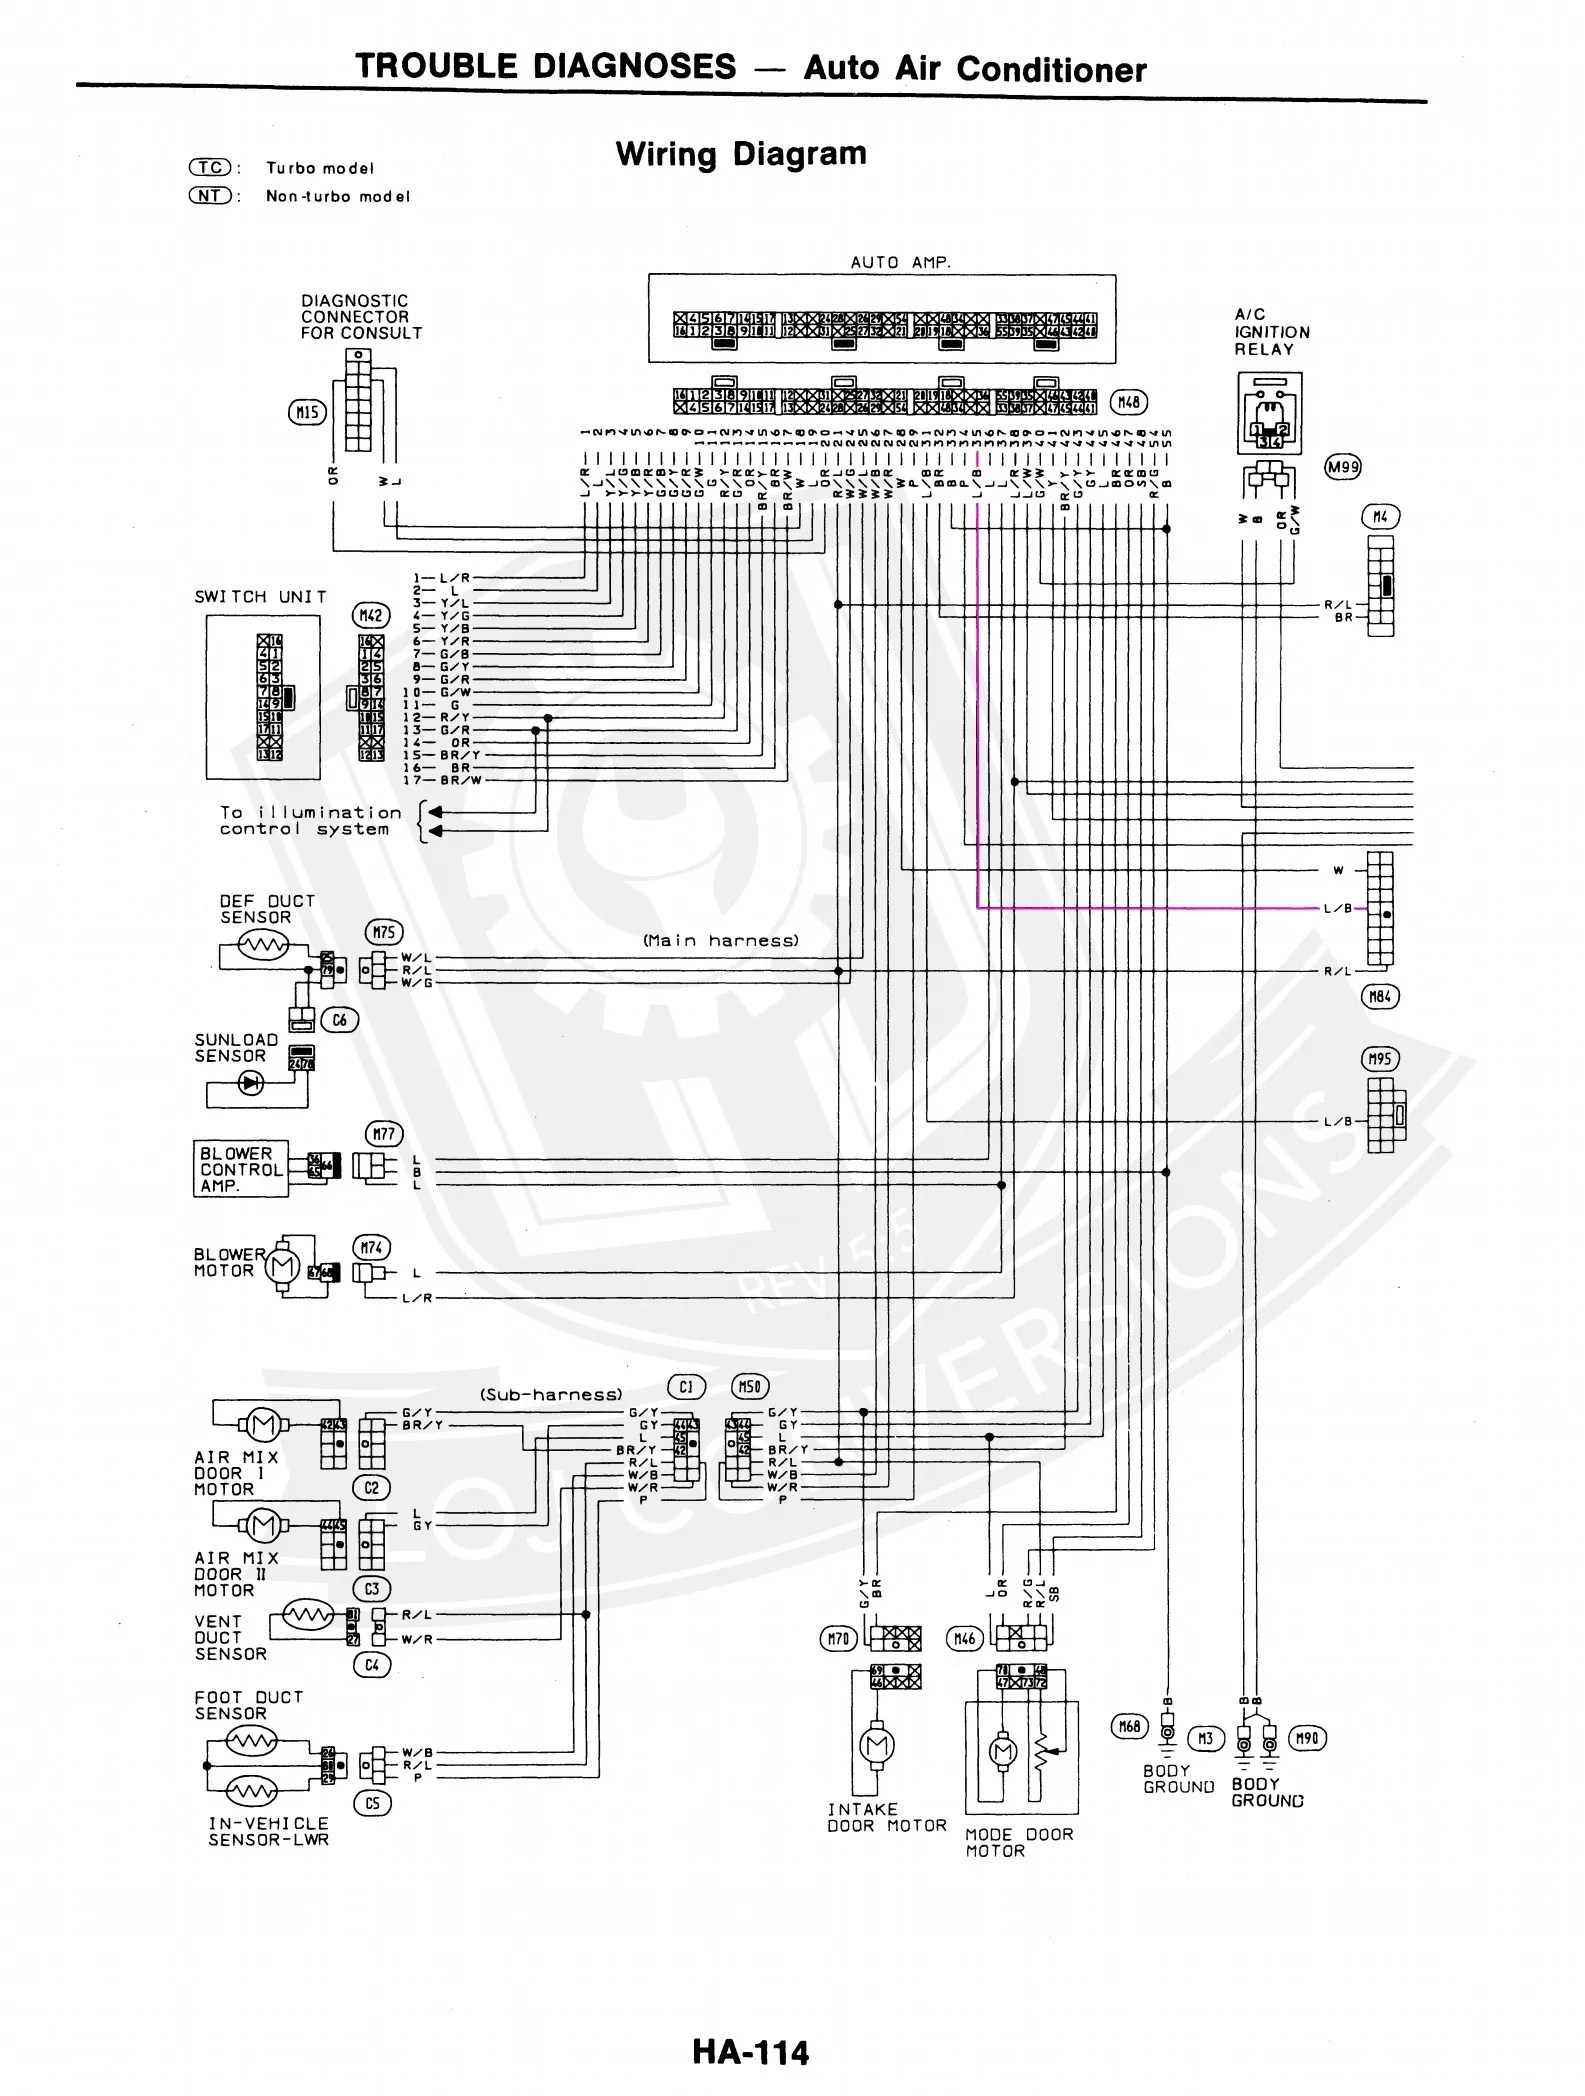 hight resolution of wiring the ac in a 300zx engine conversion loj conversions 1987 nissan 300zx engine diagram 1992 300zx engine wiring diagram